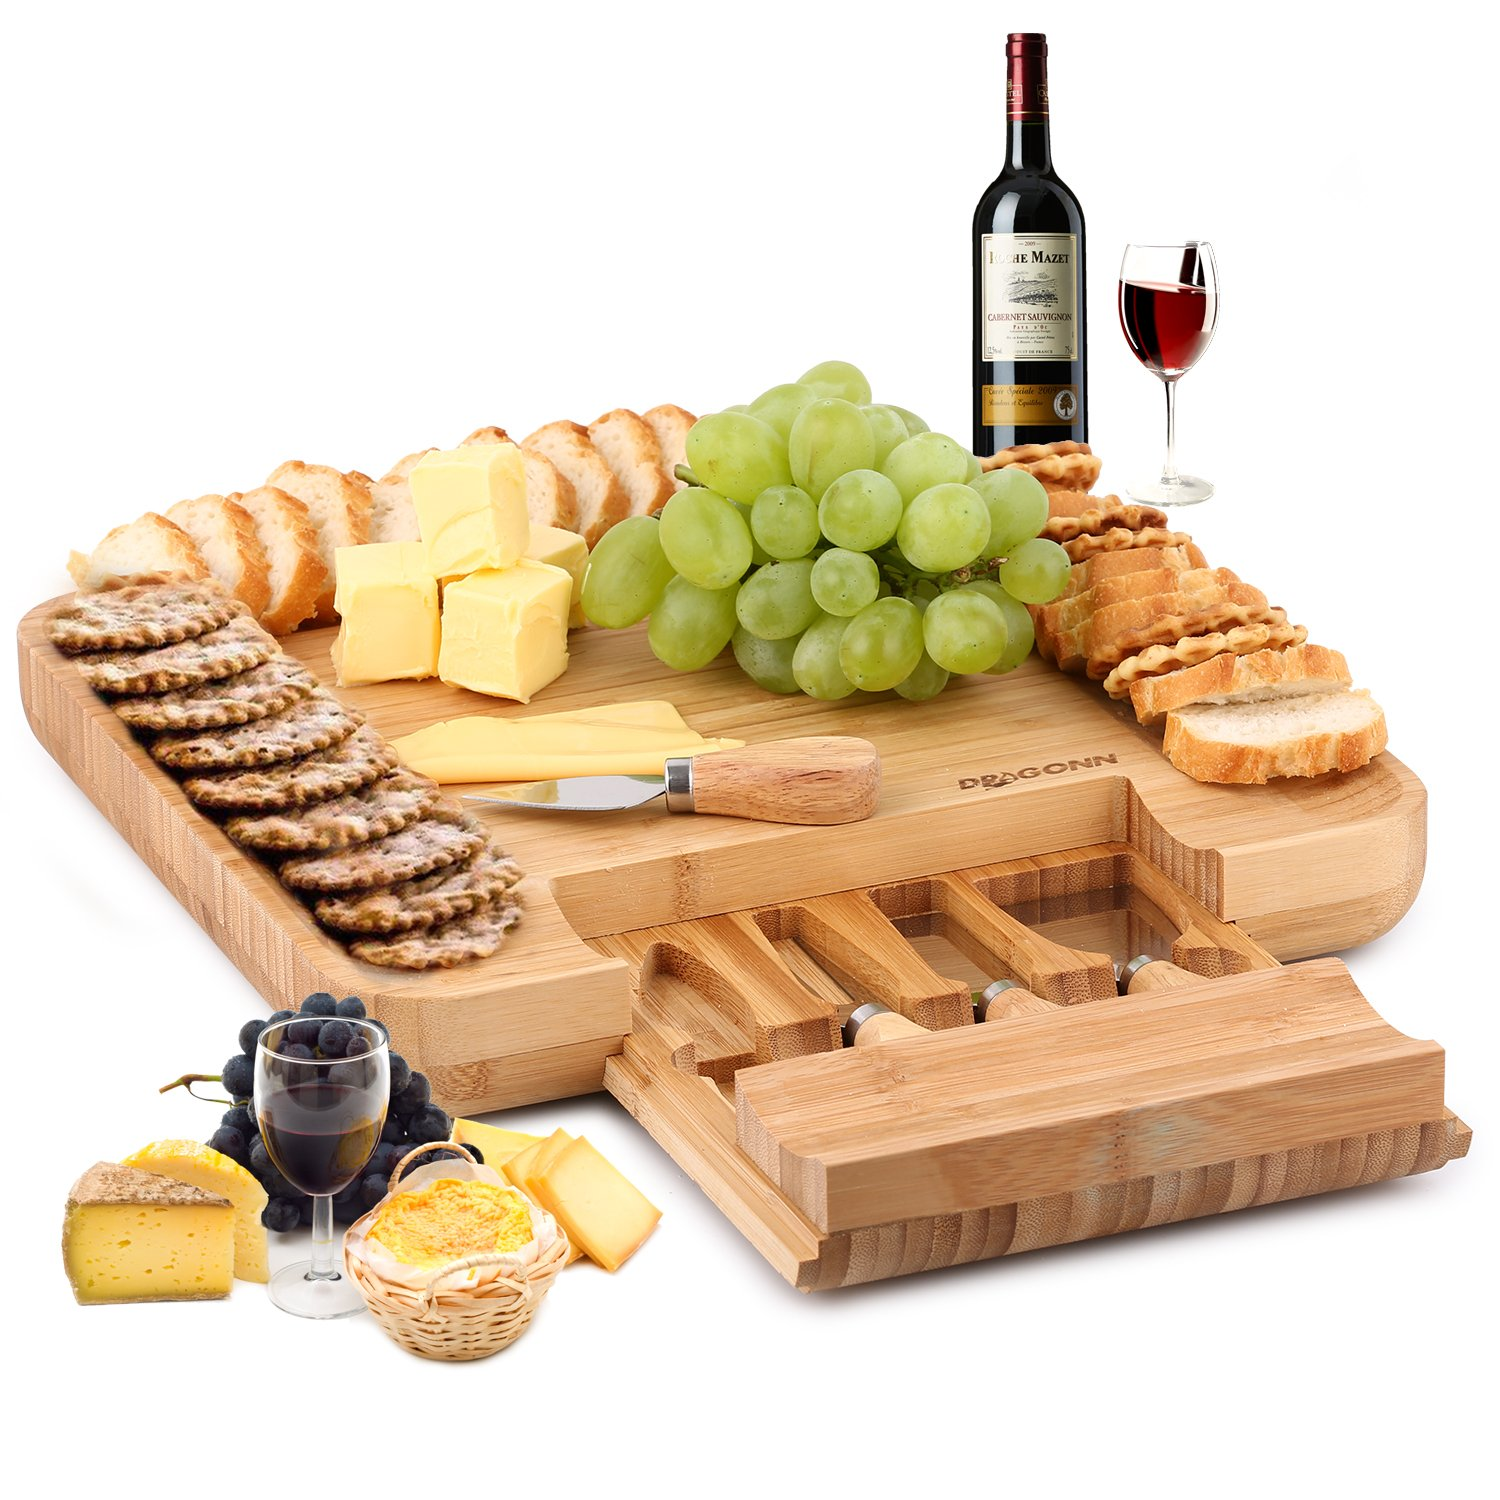 Natural Bamboo Cheese Board & Charcuterie Platter w/Hidden Drawer for Cutlery Set - Perfect Gift Idea for Birthday, Wedding, Housewarming, Mom - Serves Crackers, Meats, Fruits & Cheese by DRAGONN